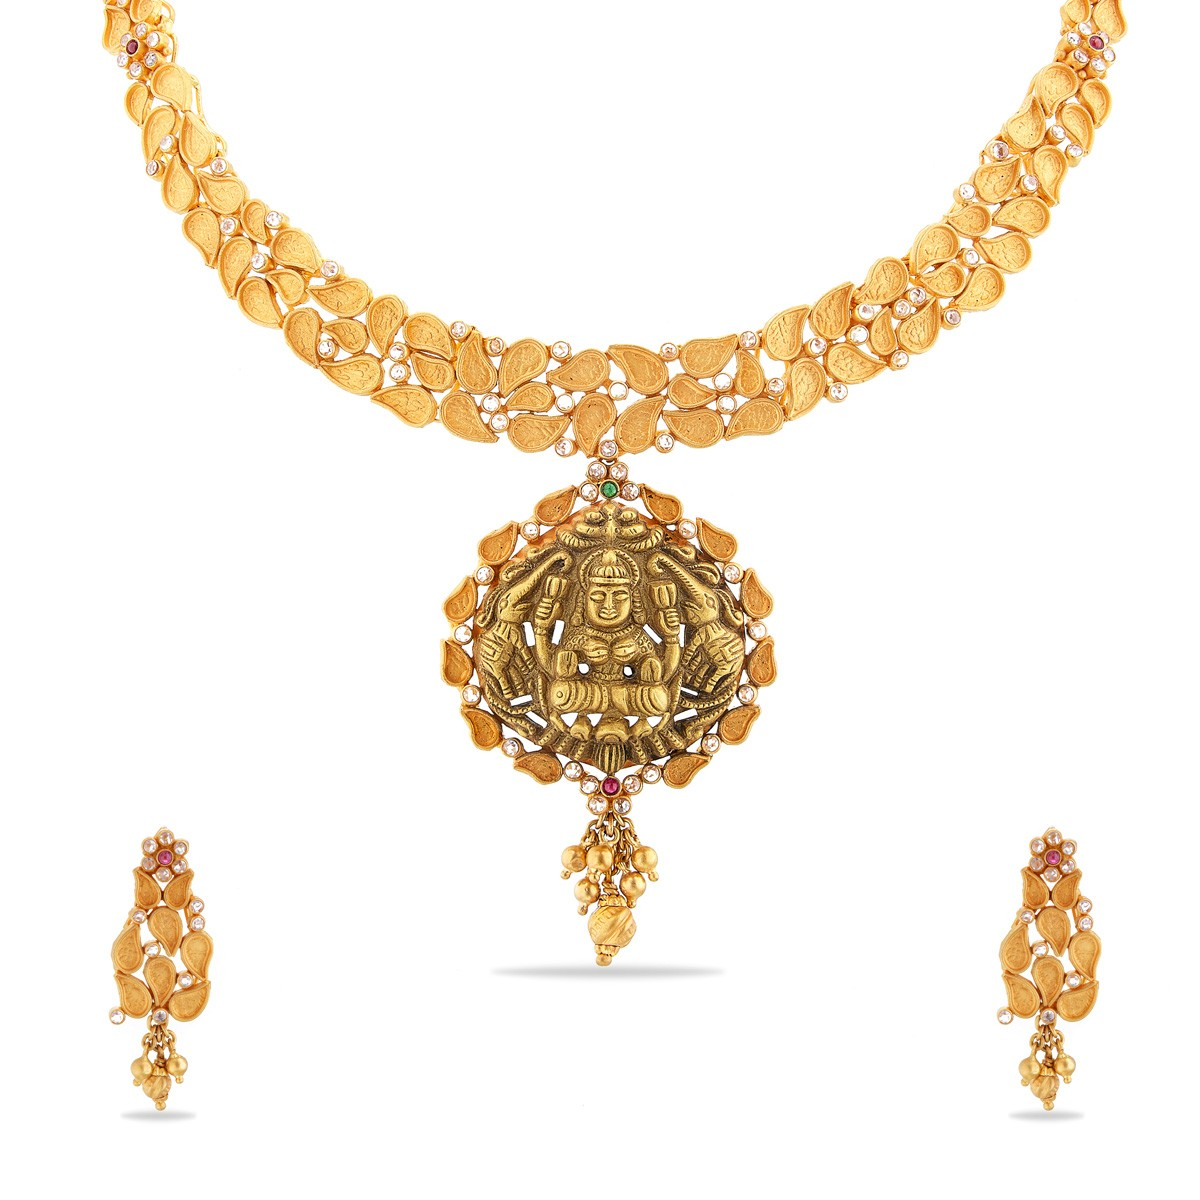 watch wedding south indian designs jewellery set necklace ladies designer popular trendy